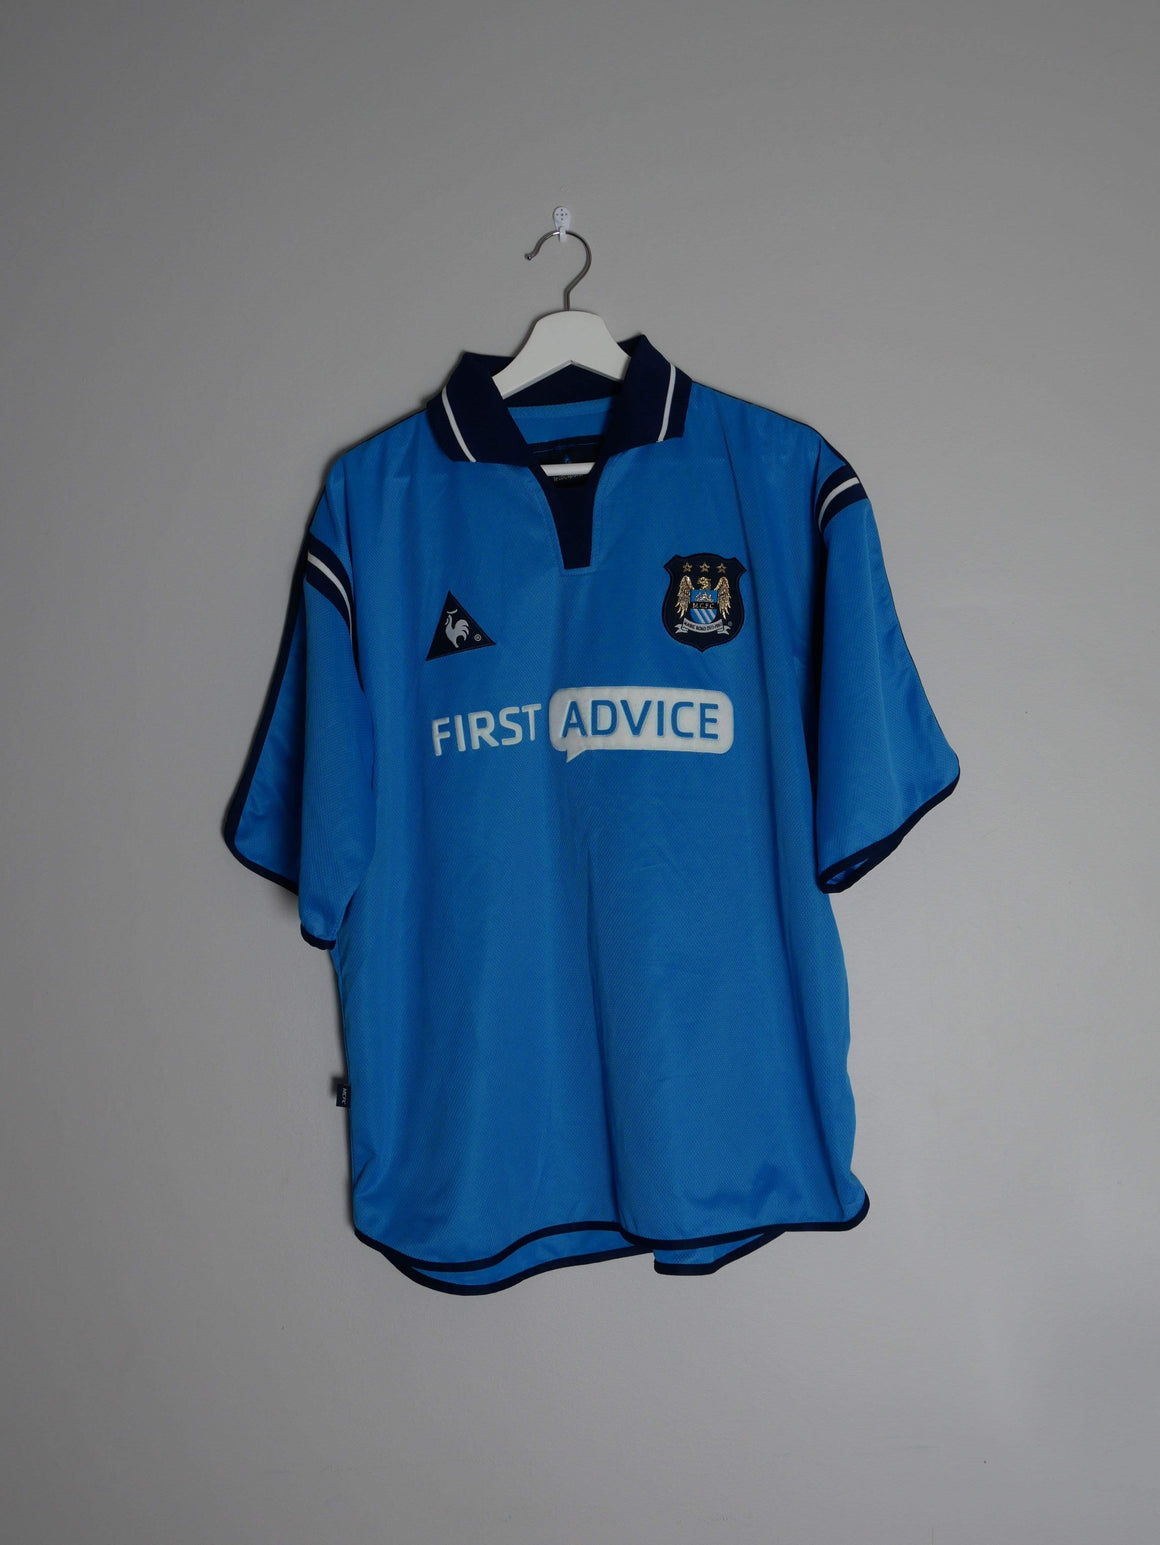 Football Shirt Collective 2002-03 Manchester City Home Shirt L (Excellent)